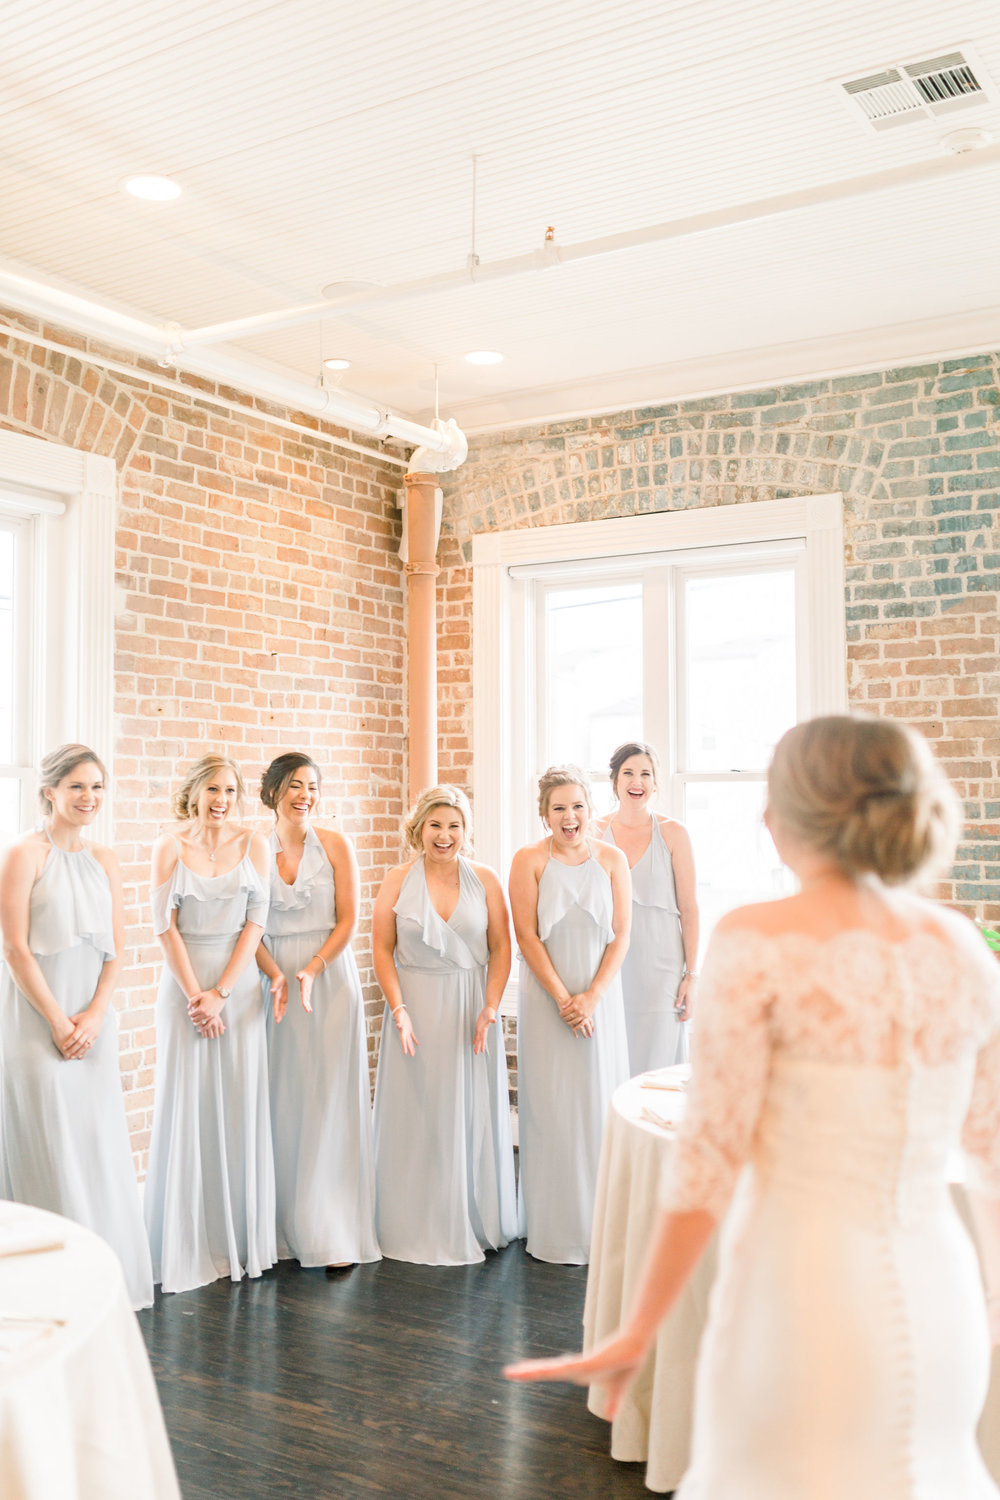 Station 3 houston bride and bridal party photo